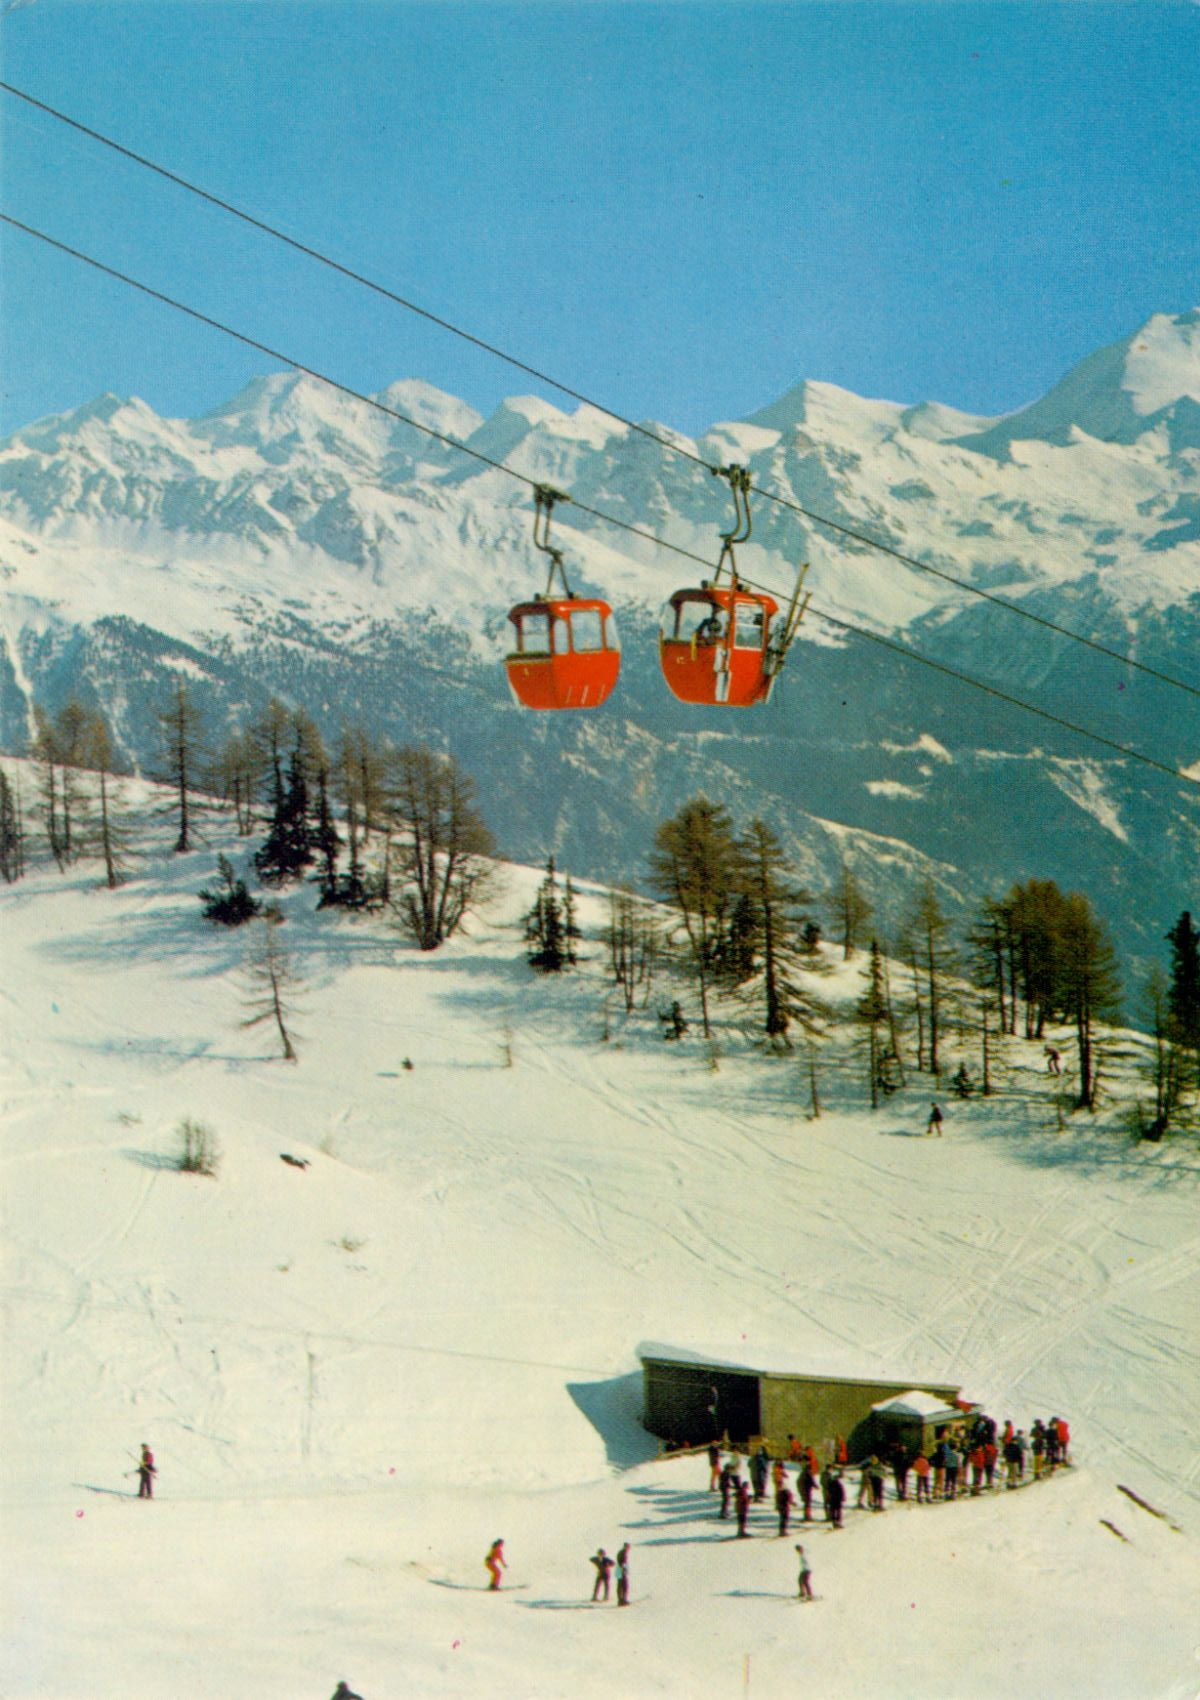 Crans Montana Tlcabine Cry dErr 1997 Editions CRA Sierre